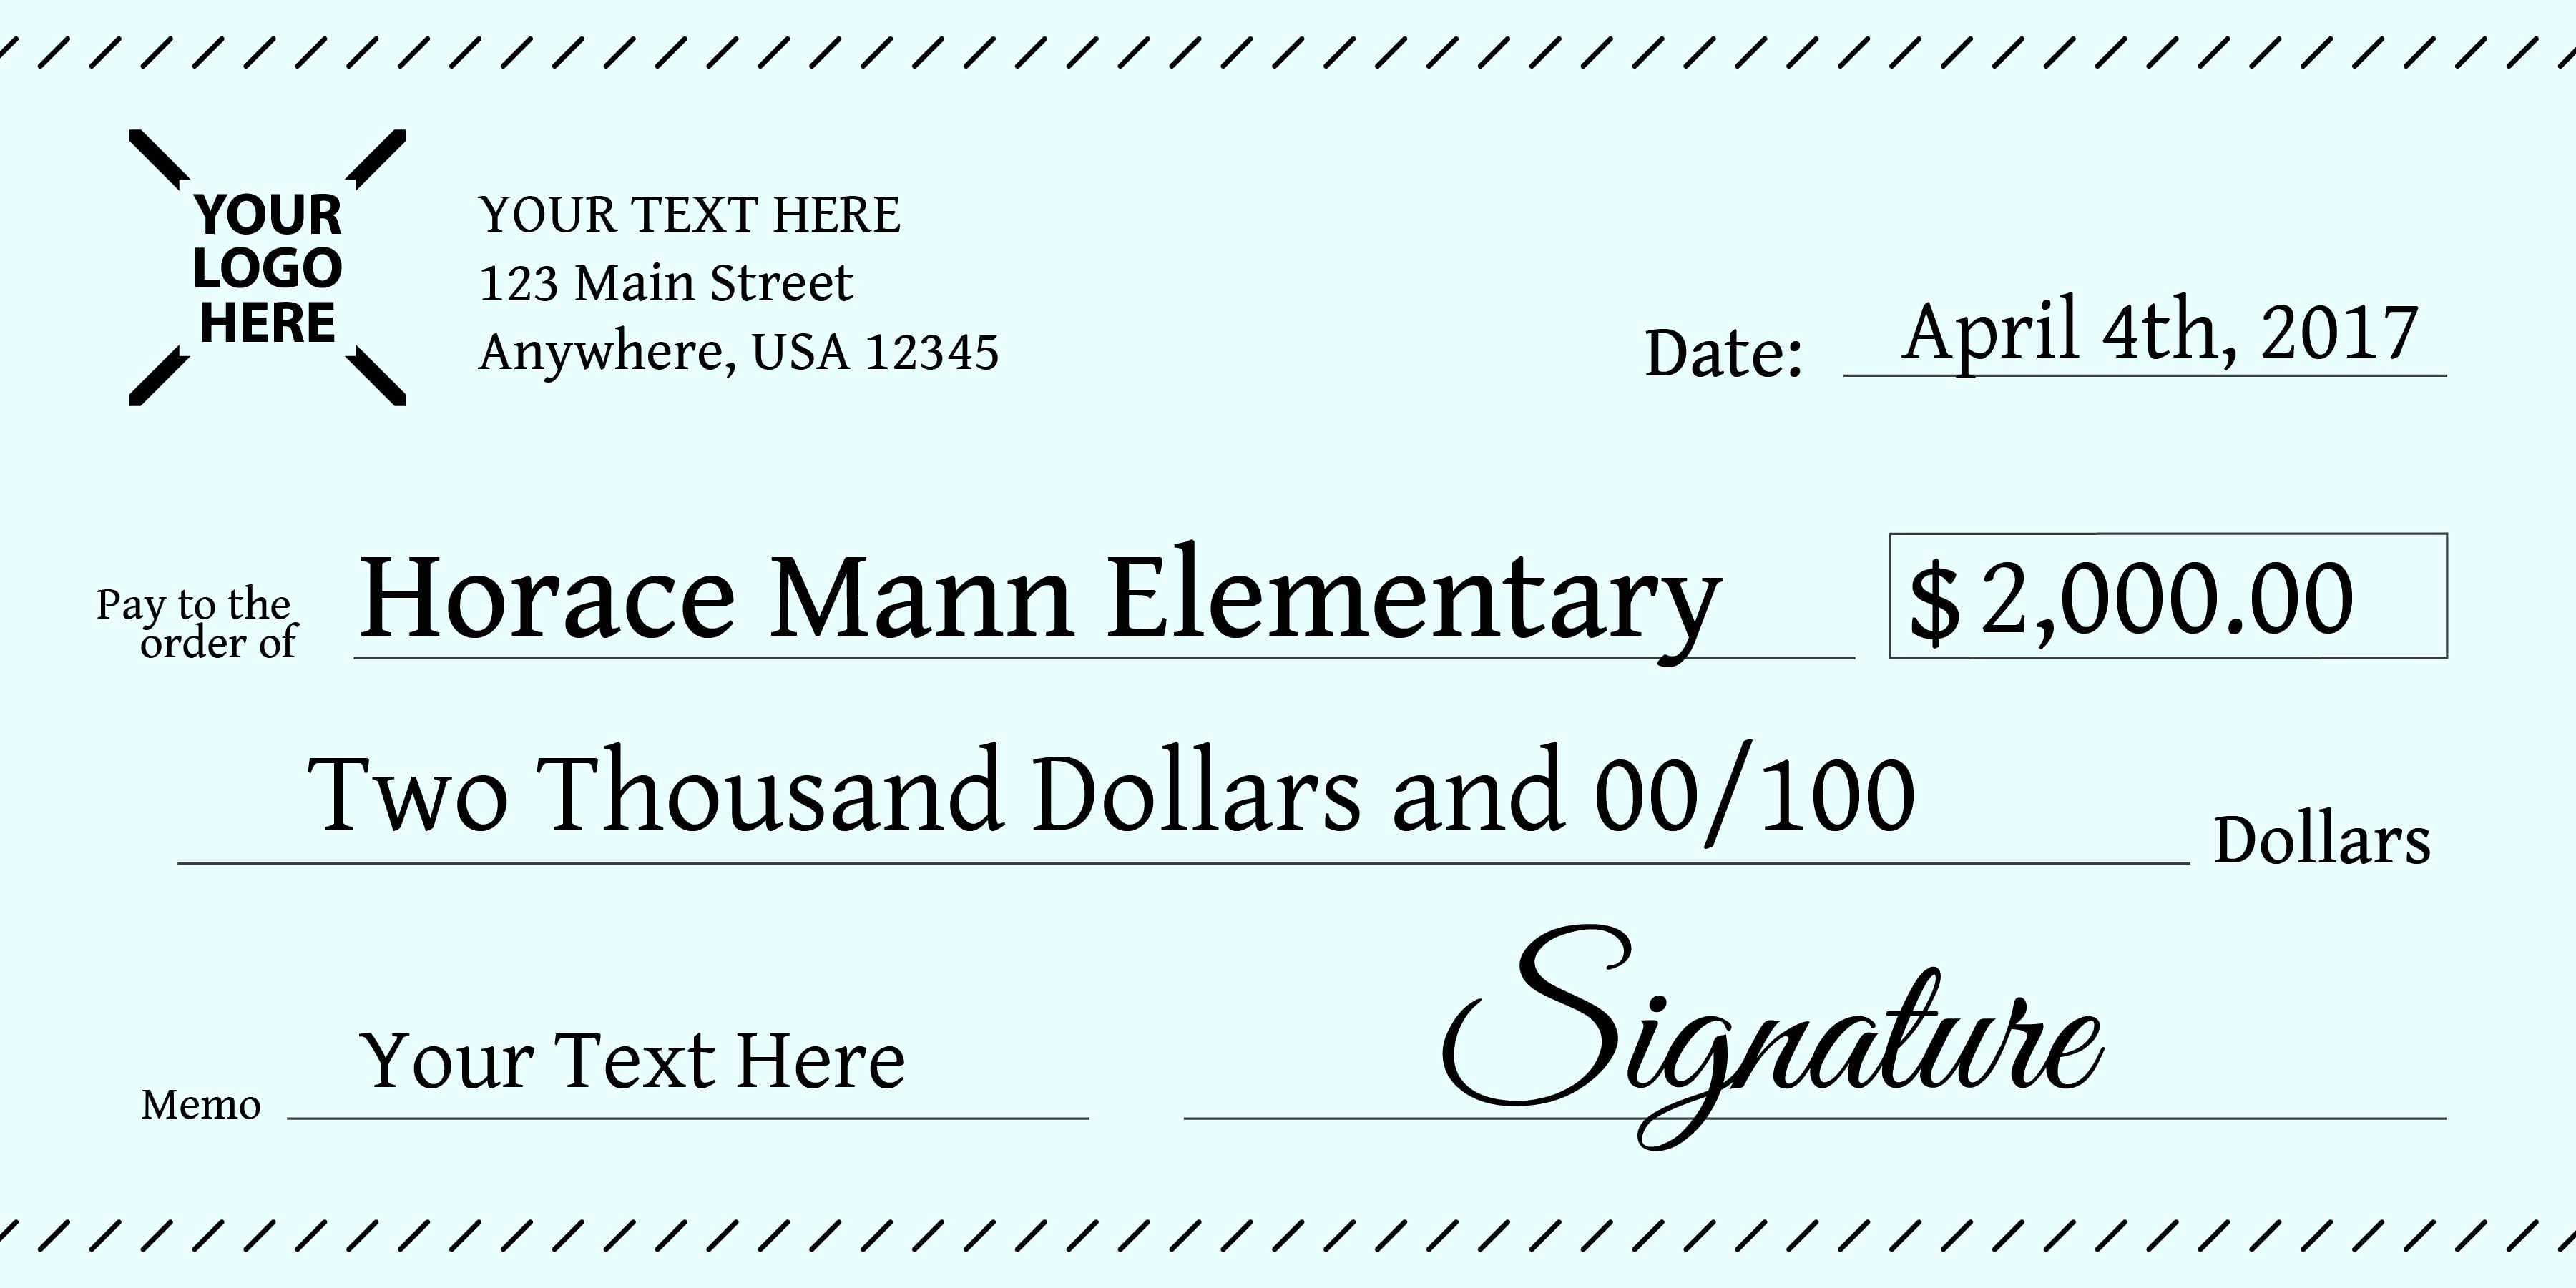 Oversized Check Template Free Beautiful Signage 101 Giant Check Uses and Templates